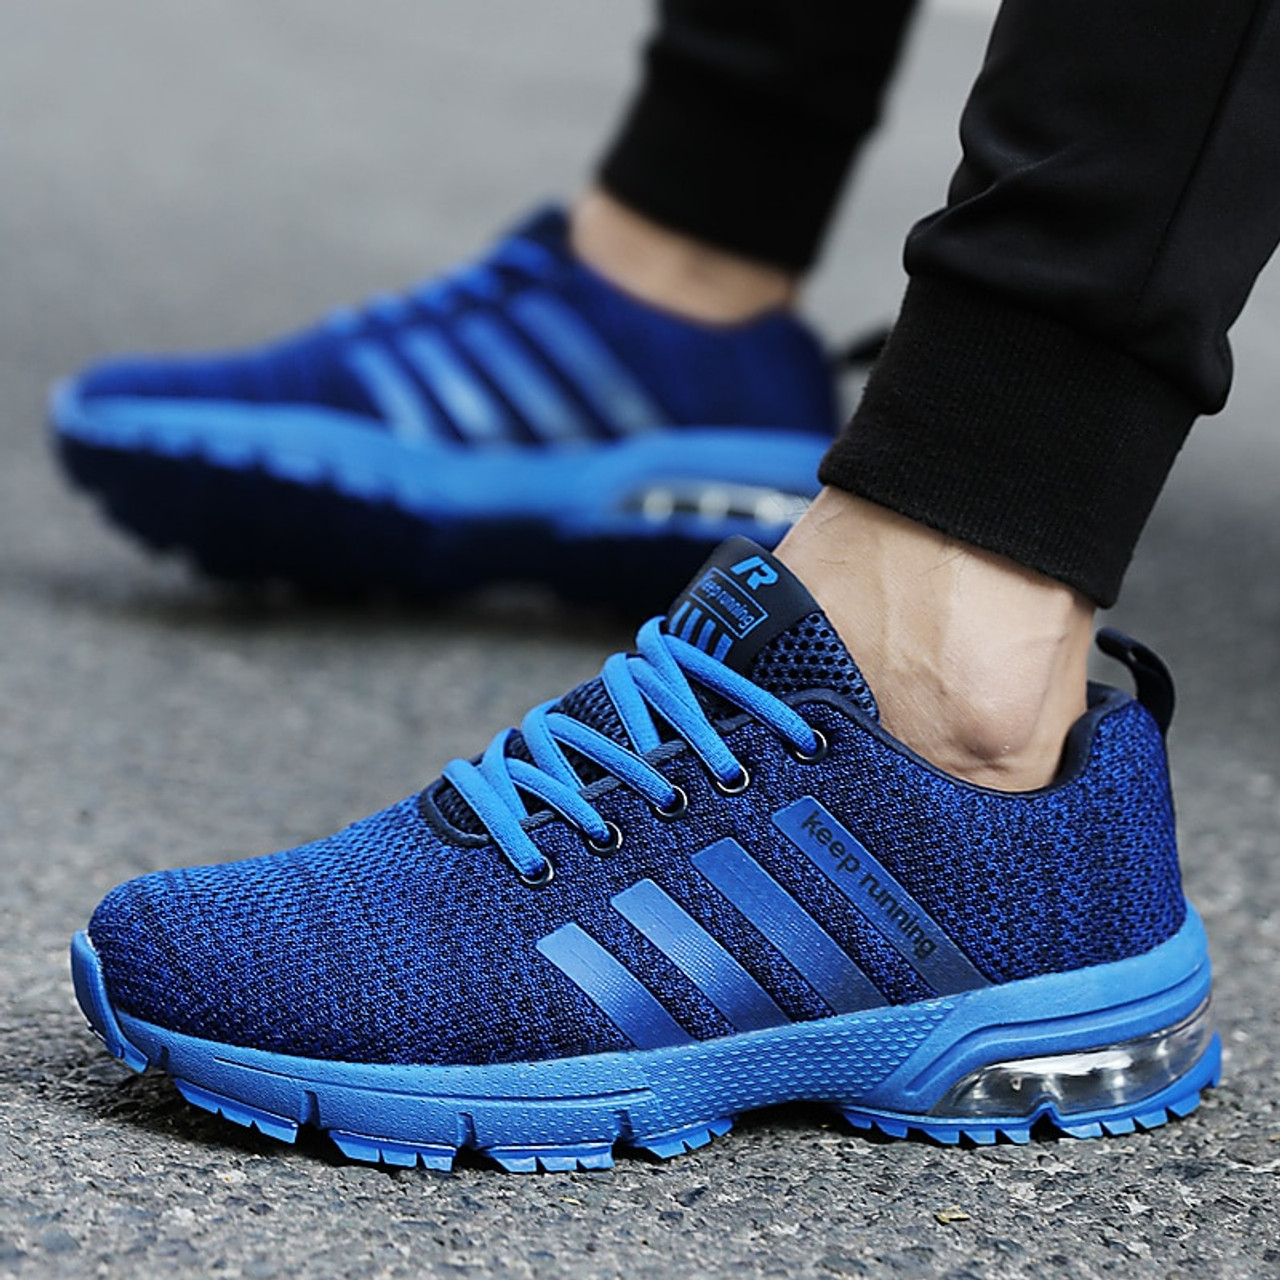 huge selection of bffcc 8fa4f Men Women Outdoor Running Shoes sneakers woman men sport shoes athletic  shoes women shoes sport 827